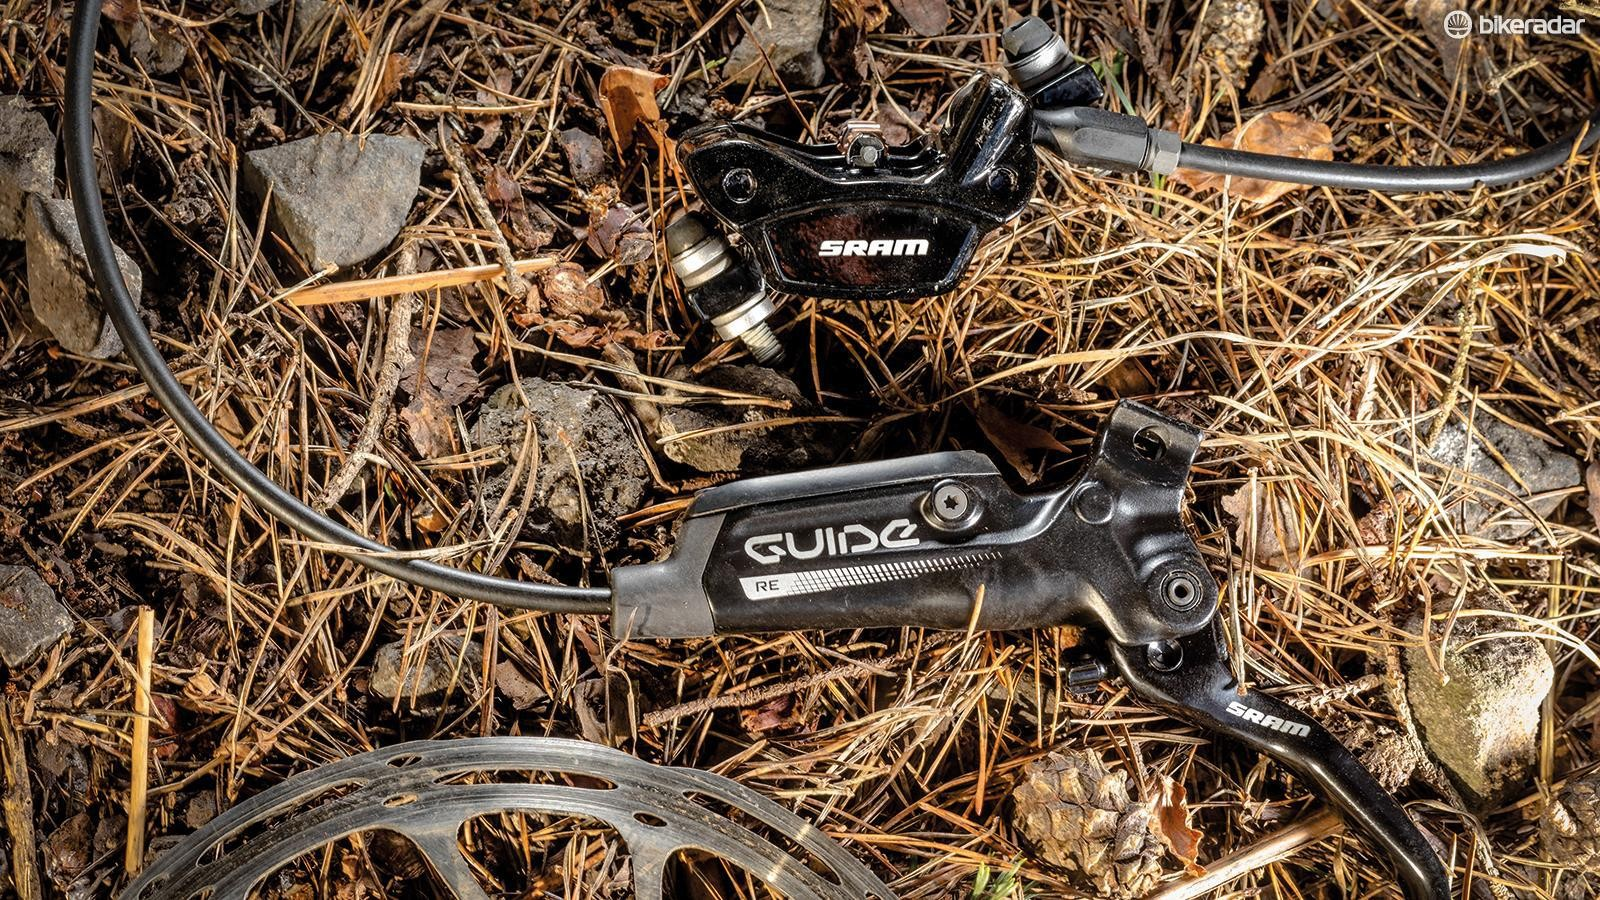 SRAM Guide RE brakes have impressed again and again with powerful stopping and their consistent, sharp lever feel